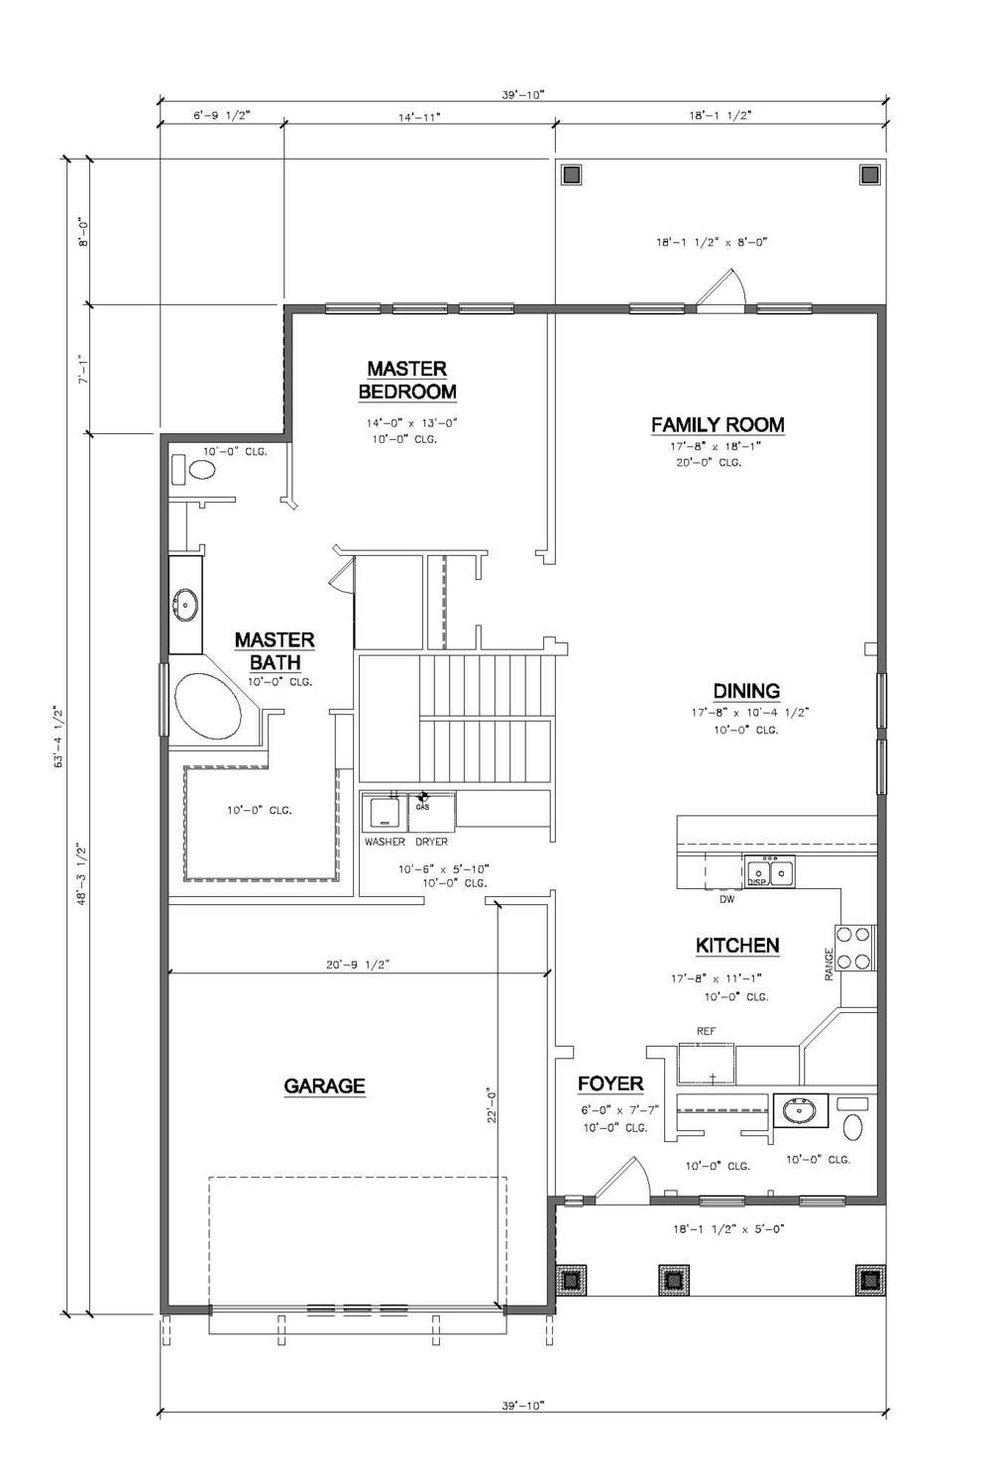 Spec Home #2 05.12.16_Page_1.jpg